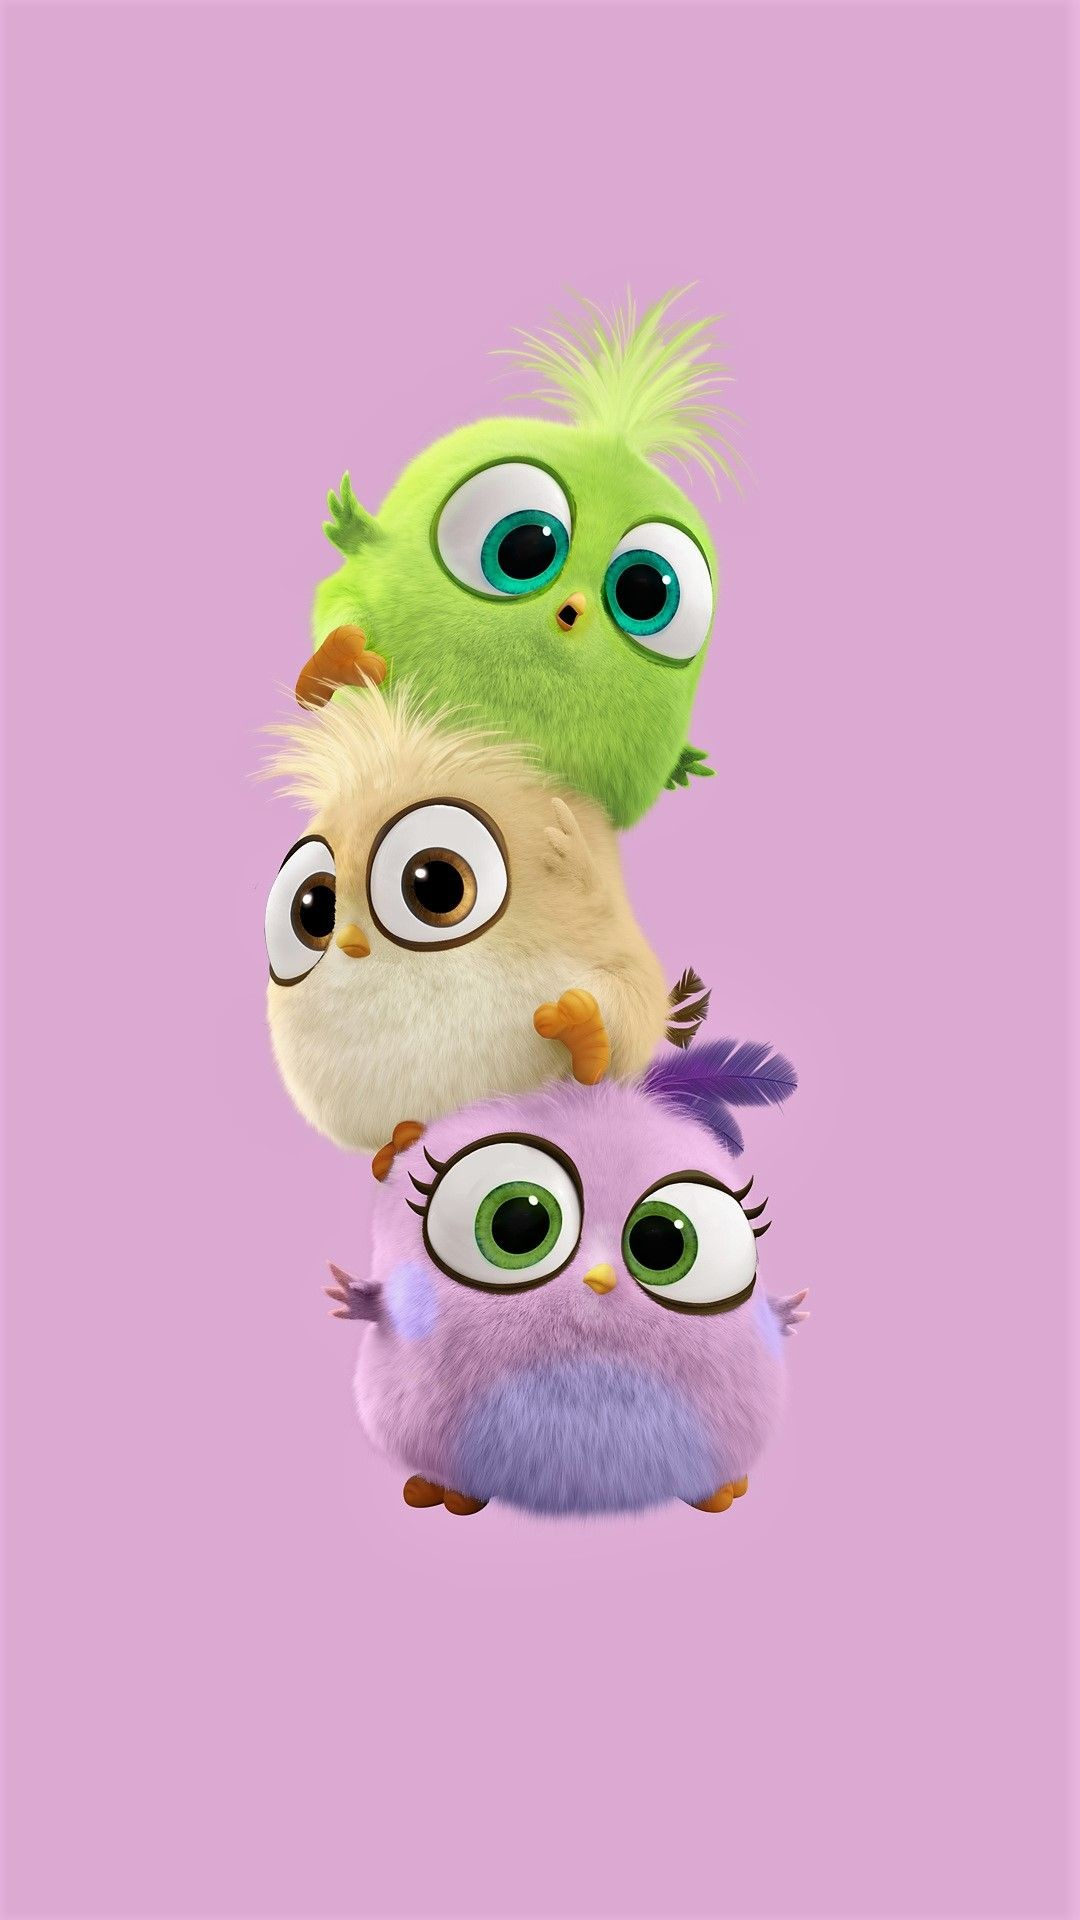 Res: 1080x1920, Cute Cartoon Wallpapers for Girls | HD Wallpapers | Pinterest | Cartoon  wallpaper and Wallpaper